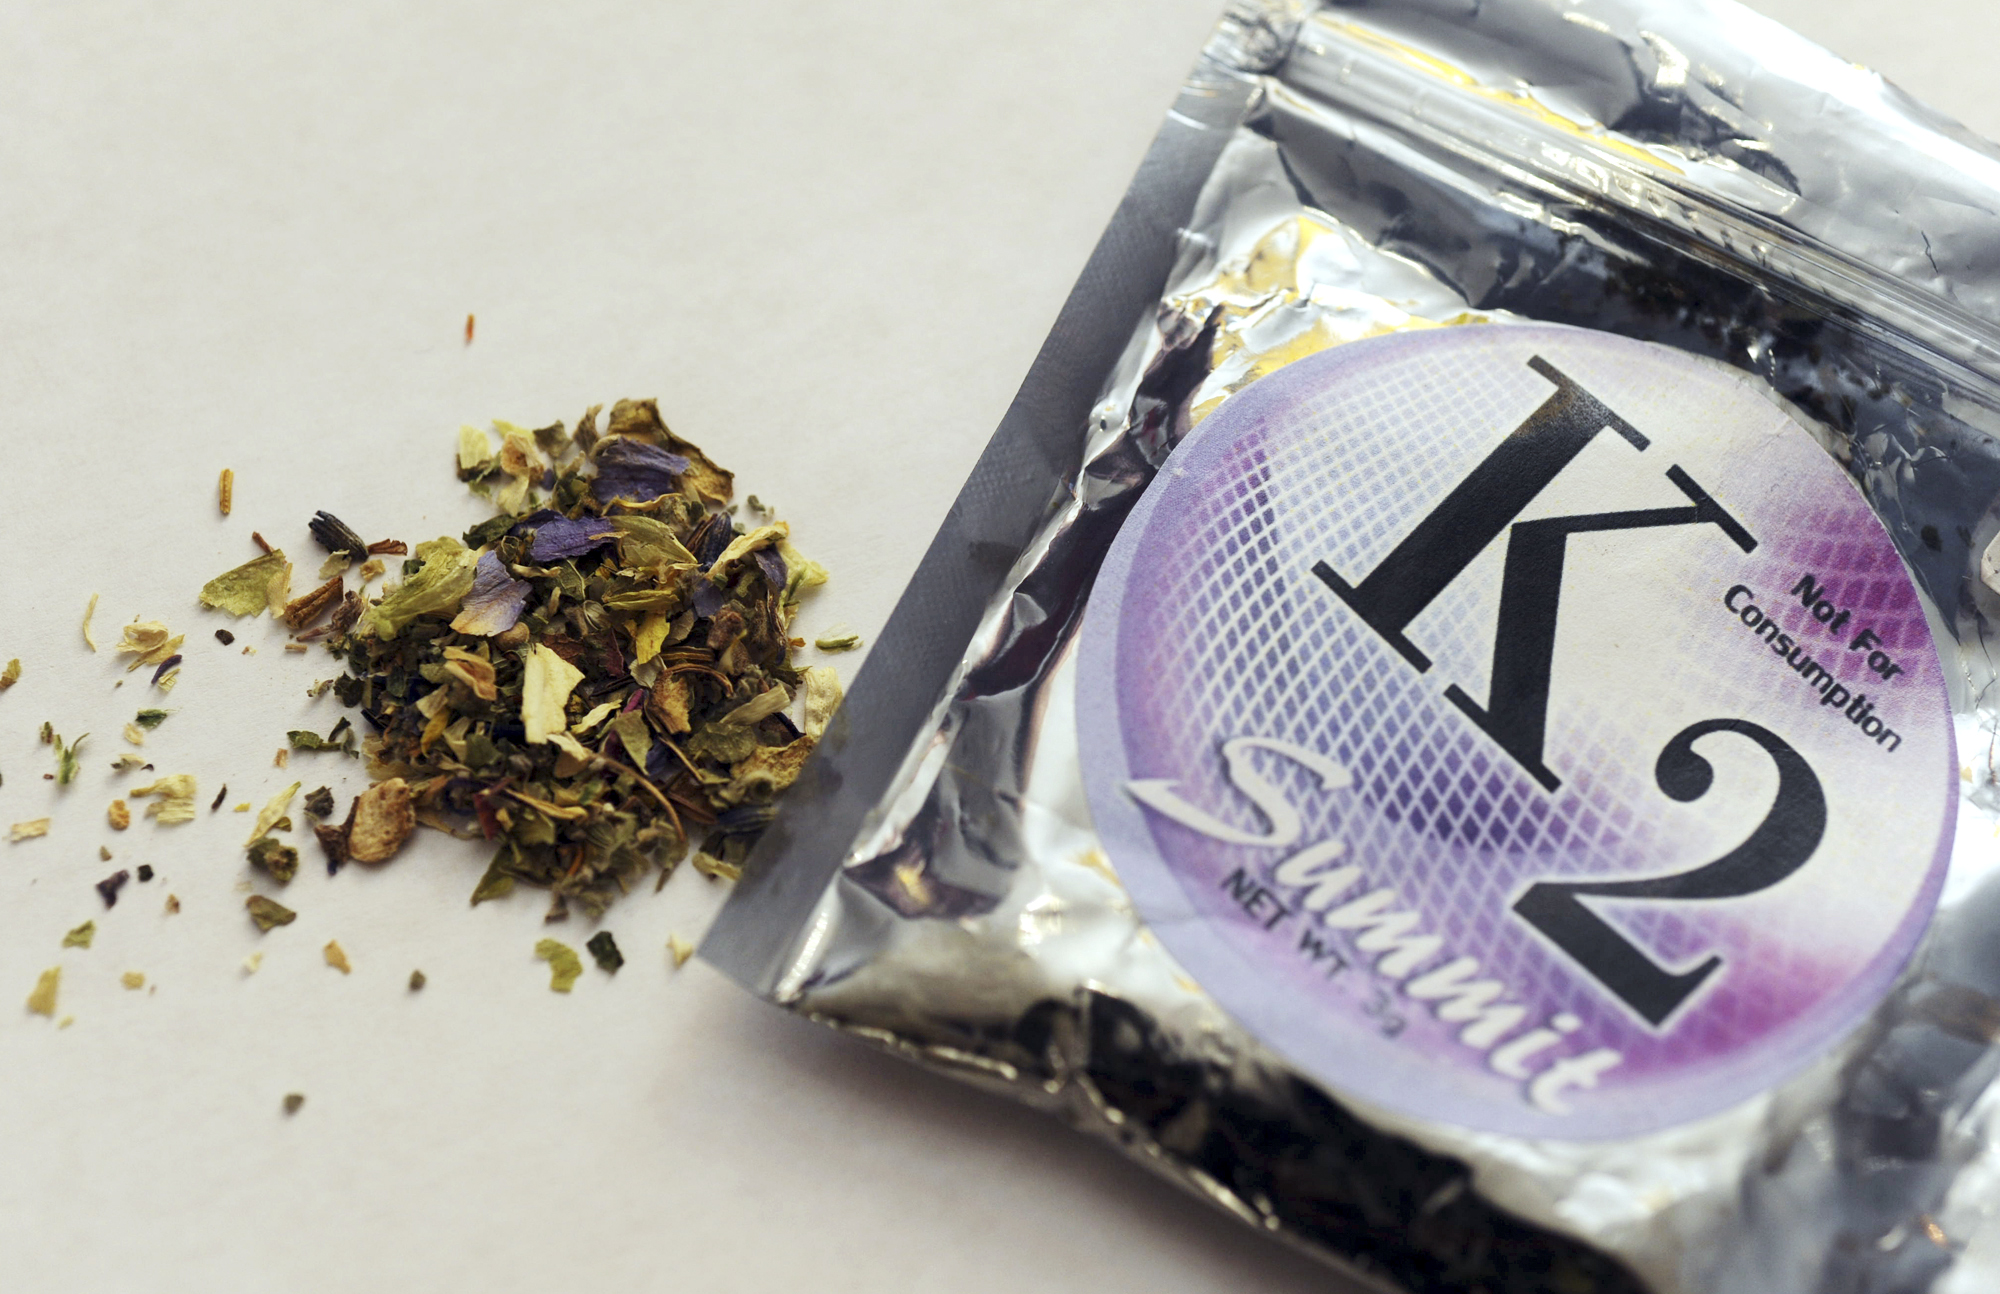 D.C. cracks down on stores selling synthetic drugs